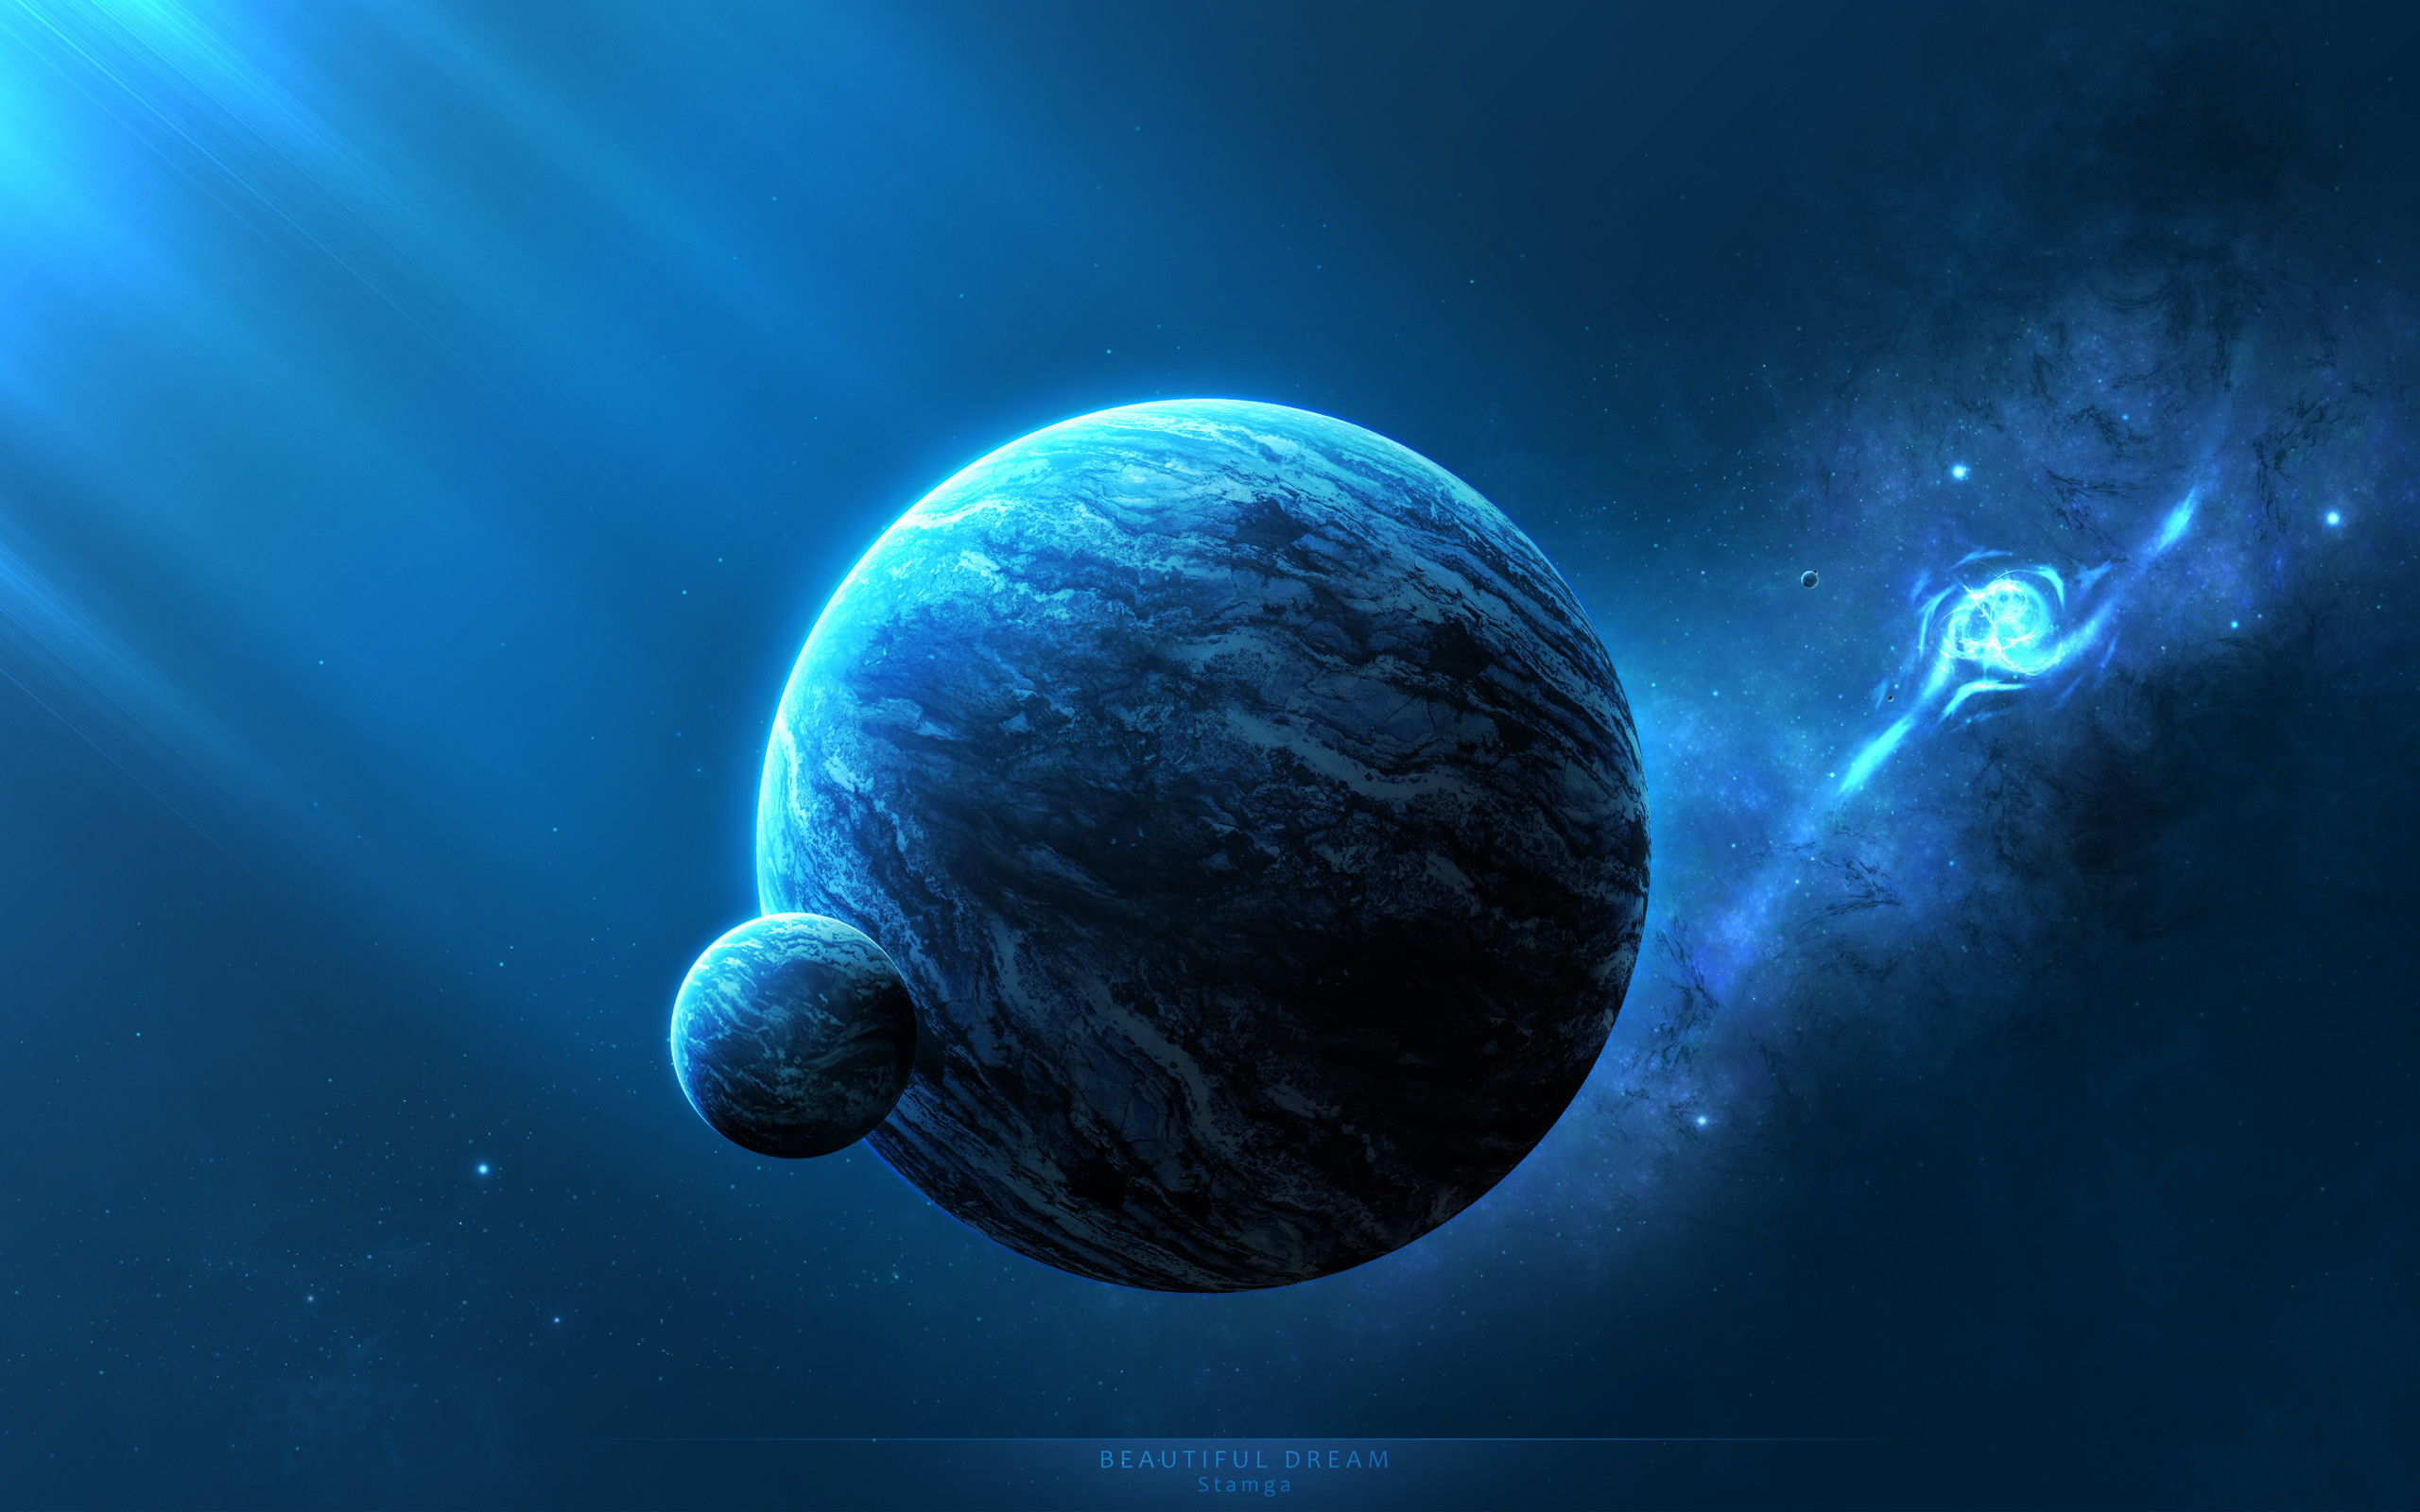 2560x1600 Universe, Earth, Space Fantasy, Galaxy, Marine Biology Wallpaper in   Resolution